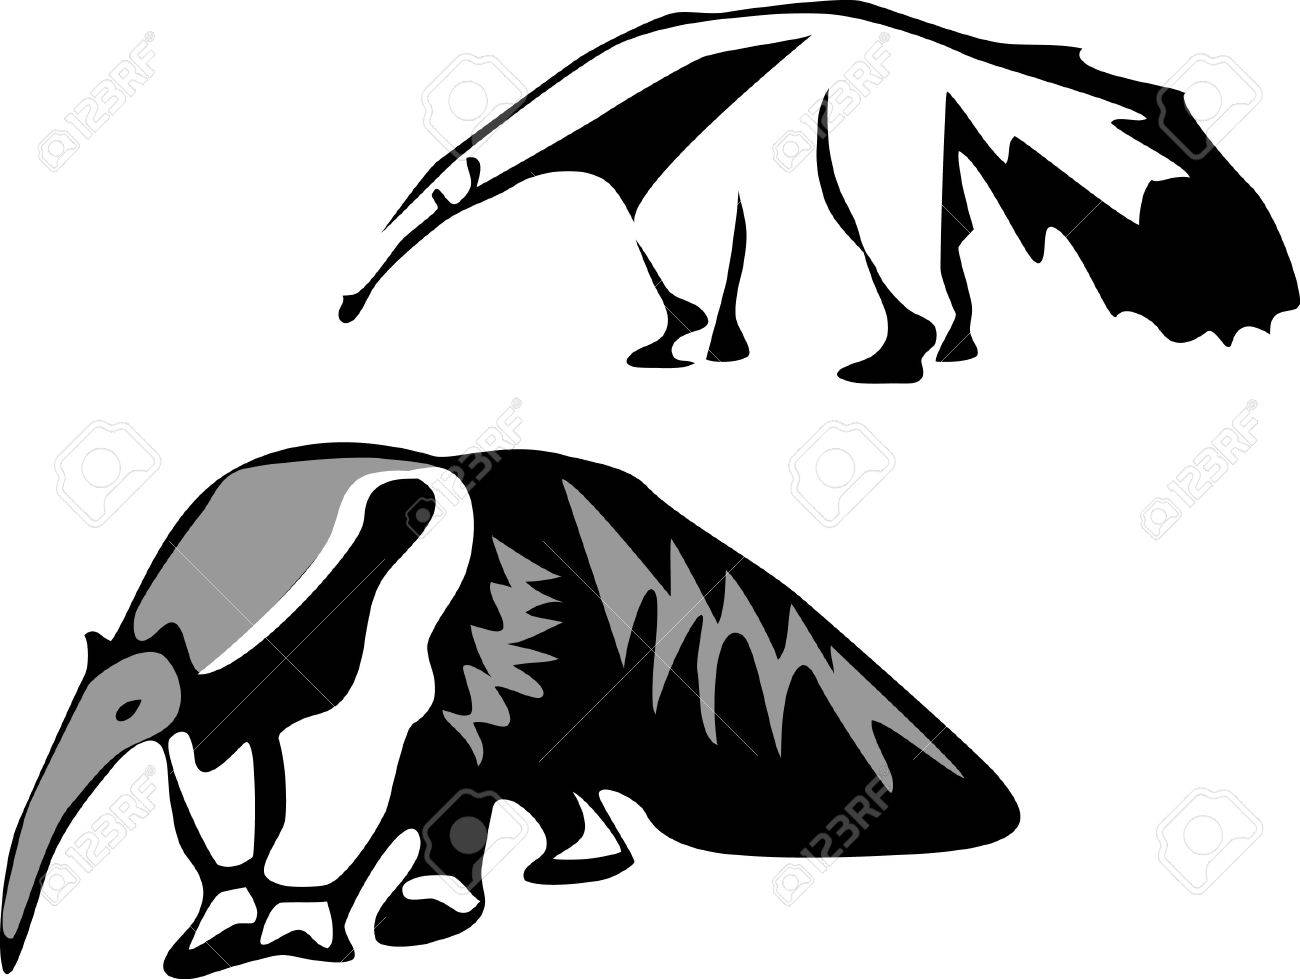 1300x979 75 Giant Anteater Stock Vector Illustration And Royalty Free Giant